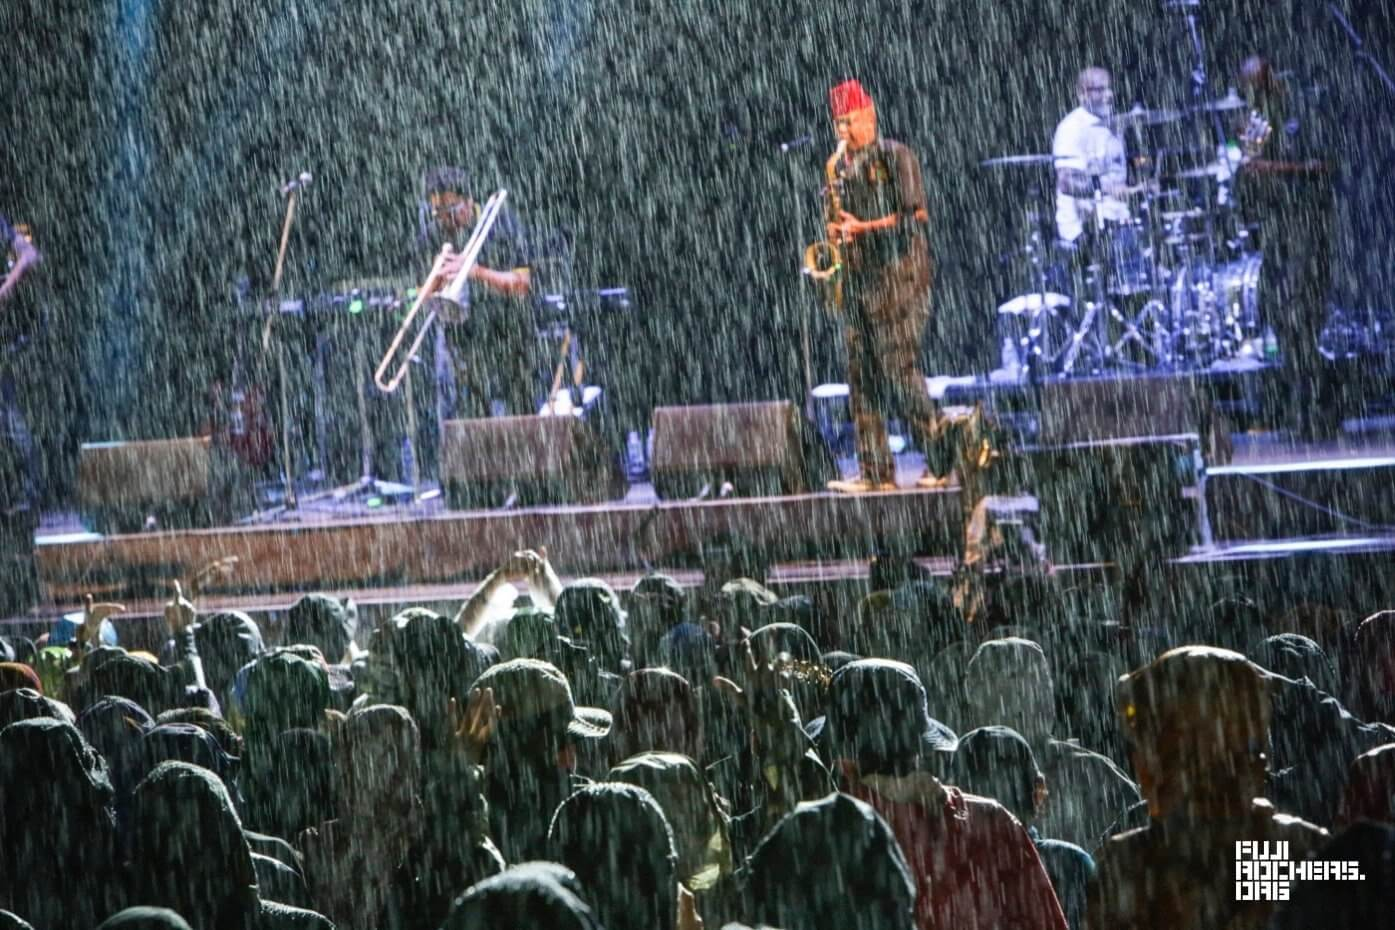 It Always Rains At Fuji Rock